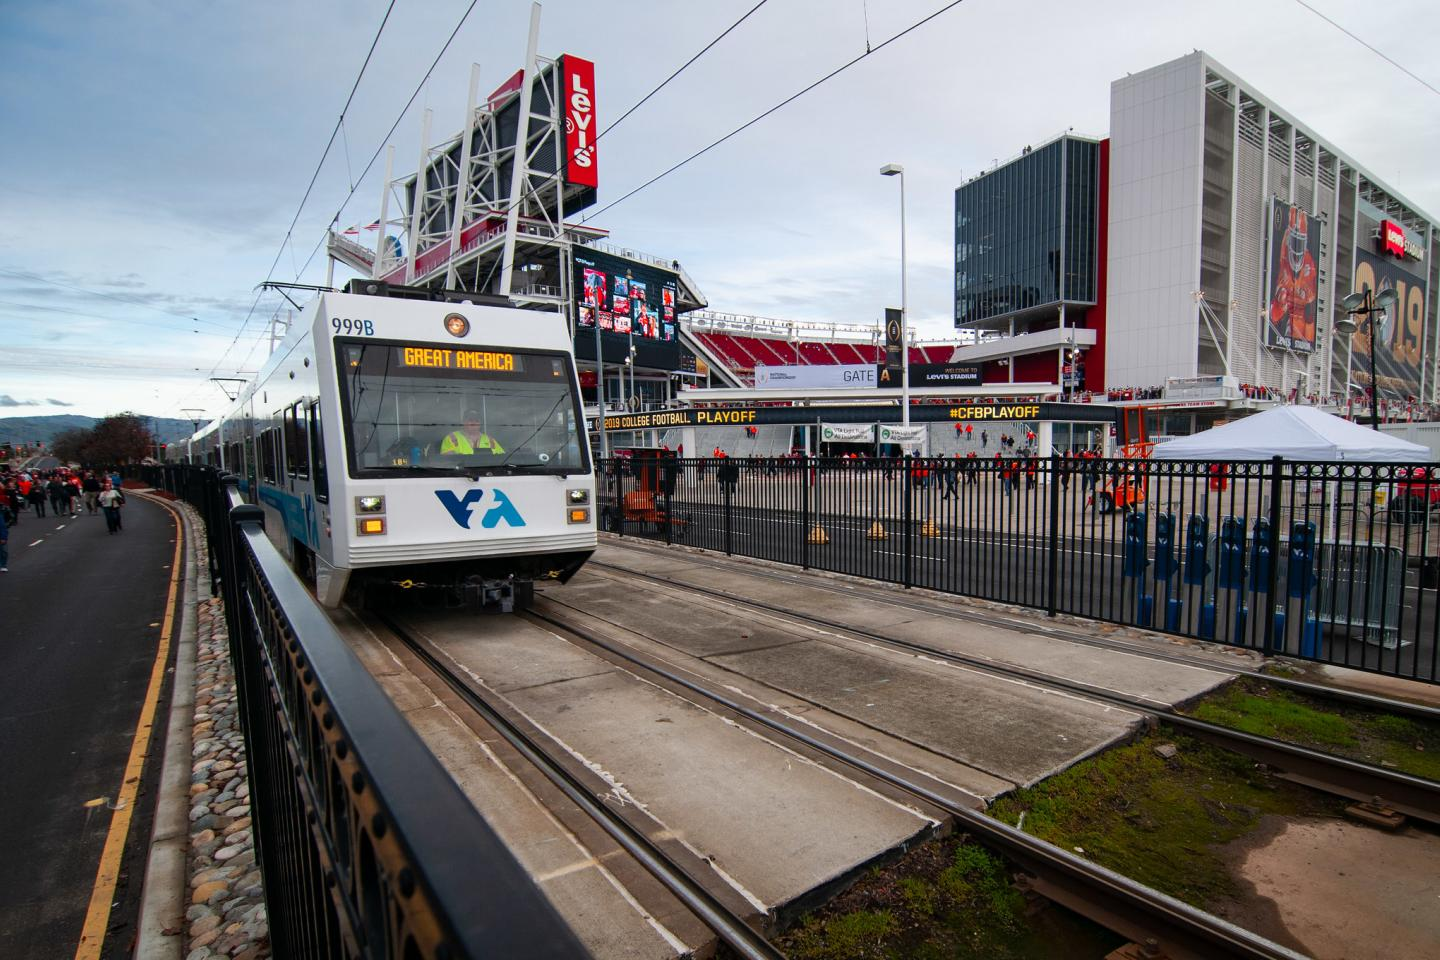 Light Rail train in front of Levi's Stadium